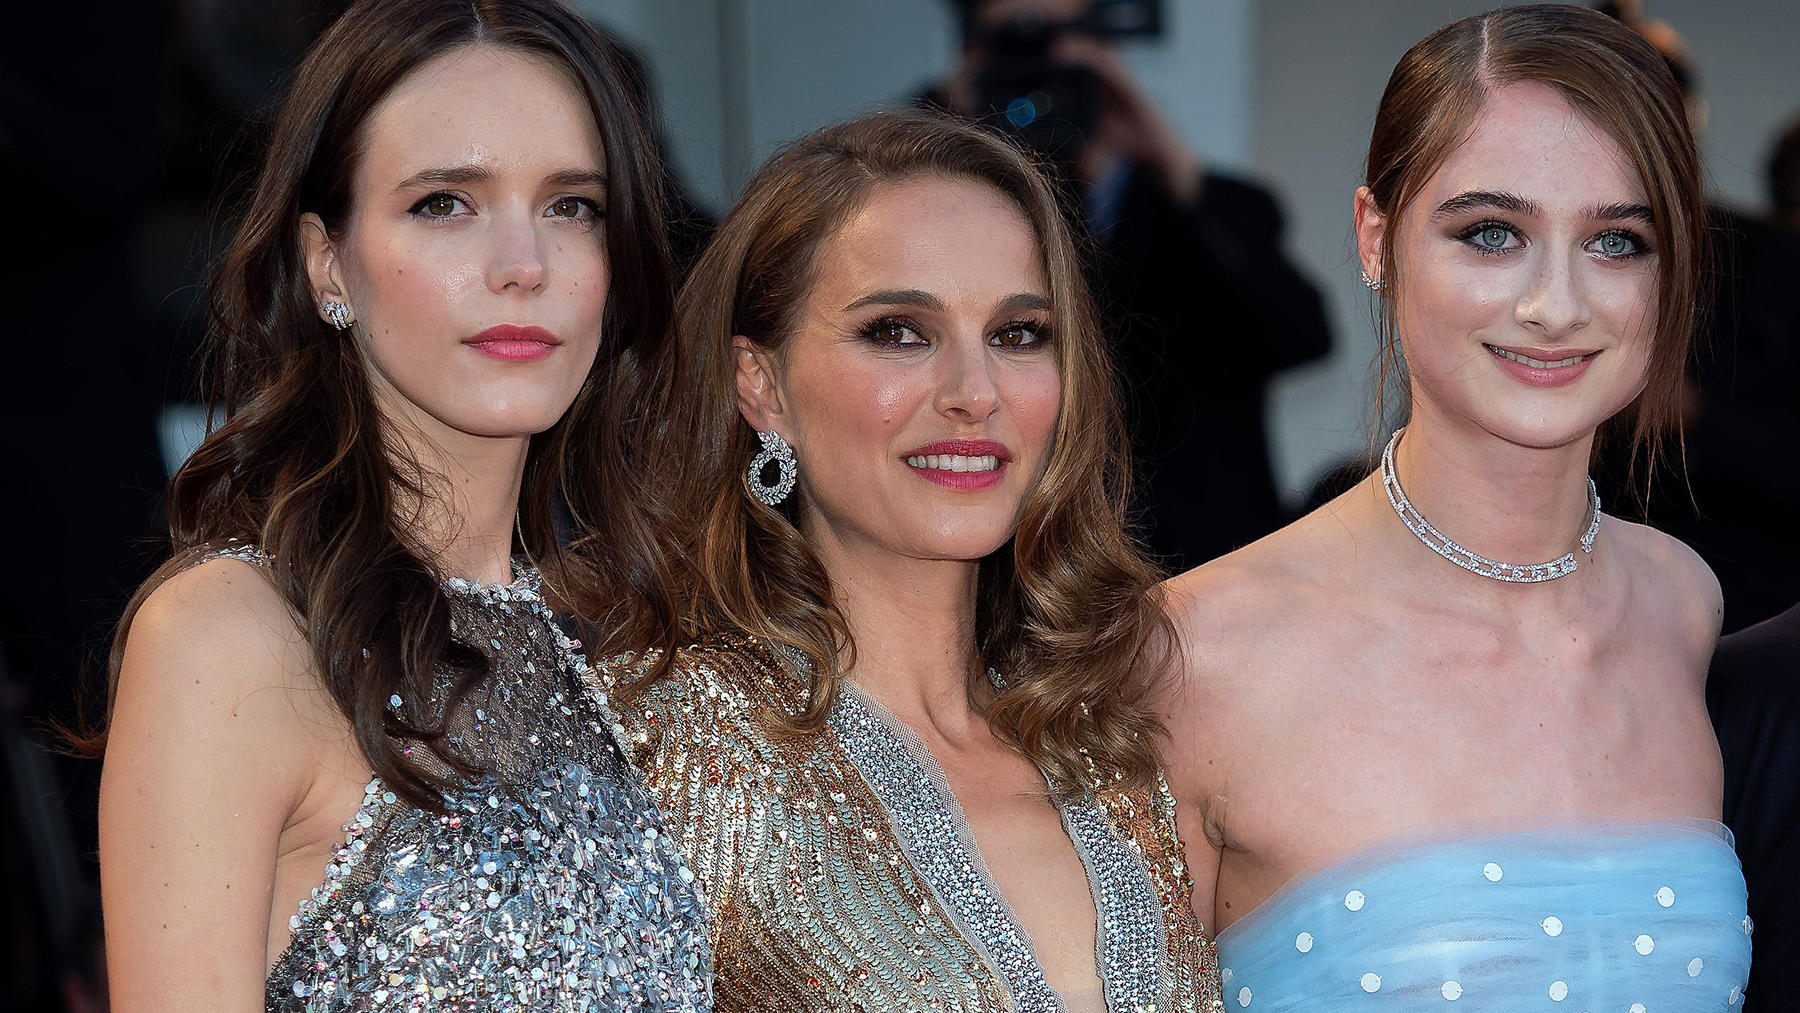 'Vox Lux' screening during the 75th Venice Film Festival in Venice, Italy.Pictured: Stacy Martin,Natalie Portman,Raffey CassidyRef: SPL5020813 040918 NON-EXCLUSIVEPicture by: SplashNews.comSplash News and PicturesLos Angeles: 310-821-2666New York: 21